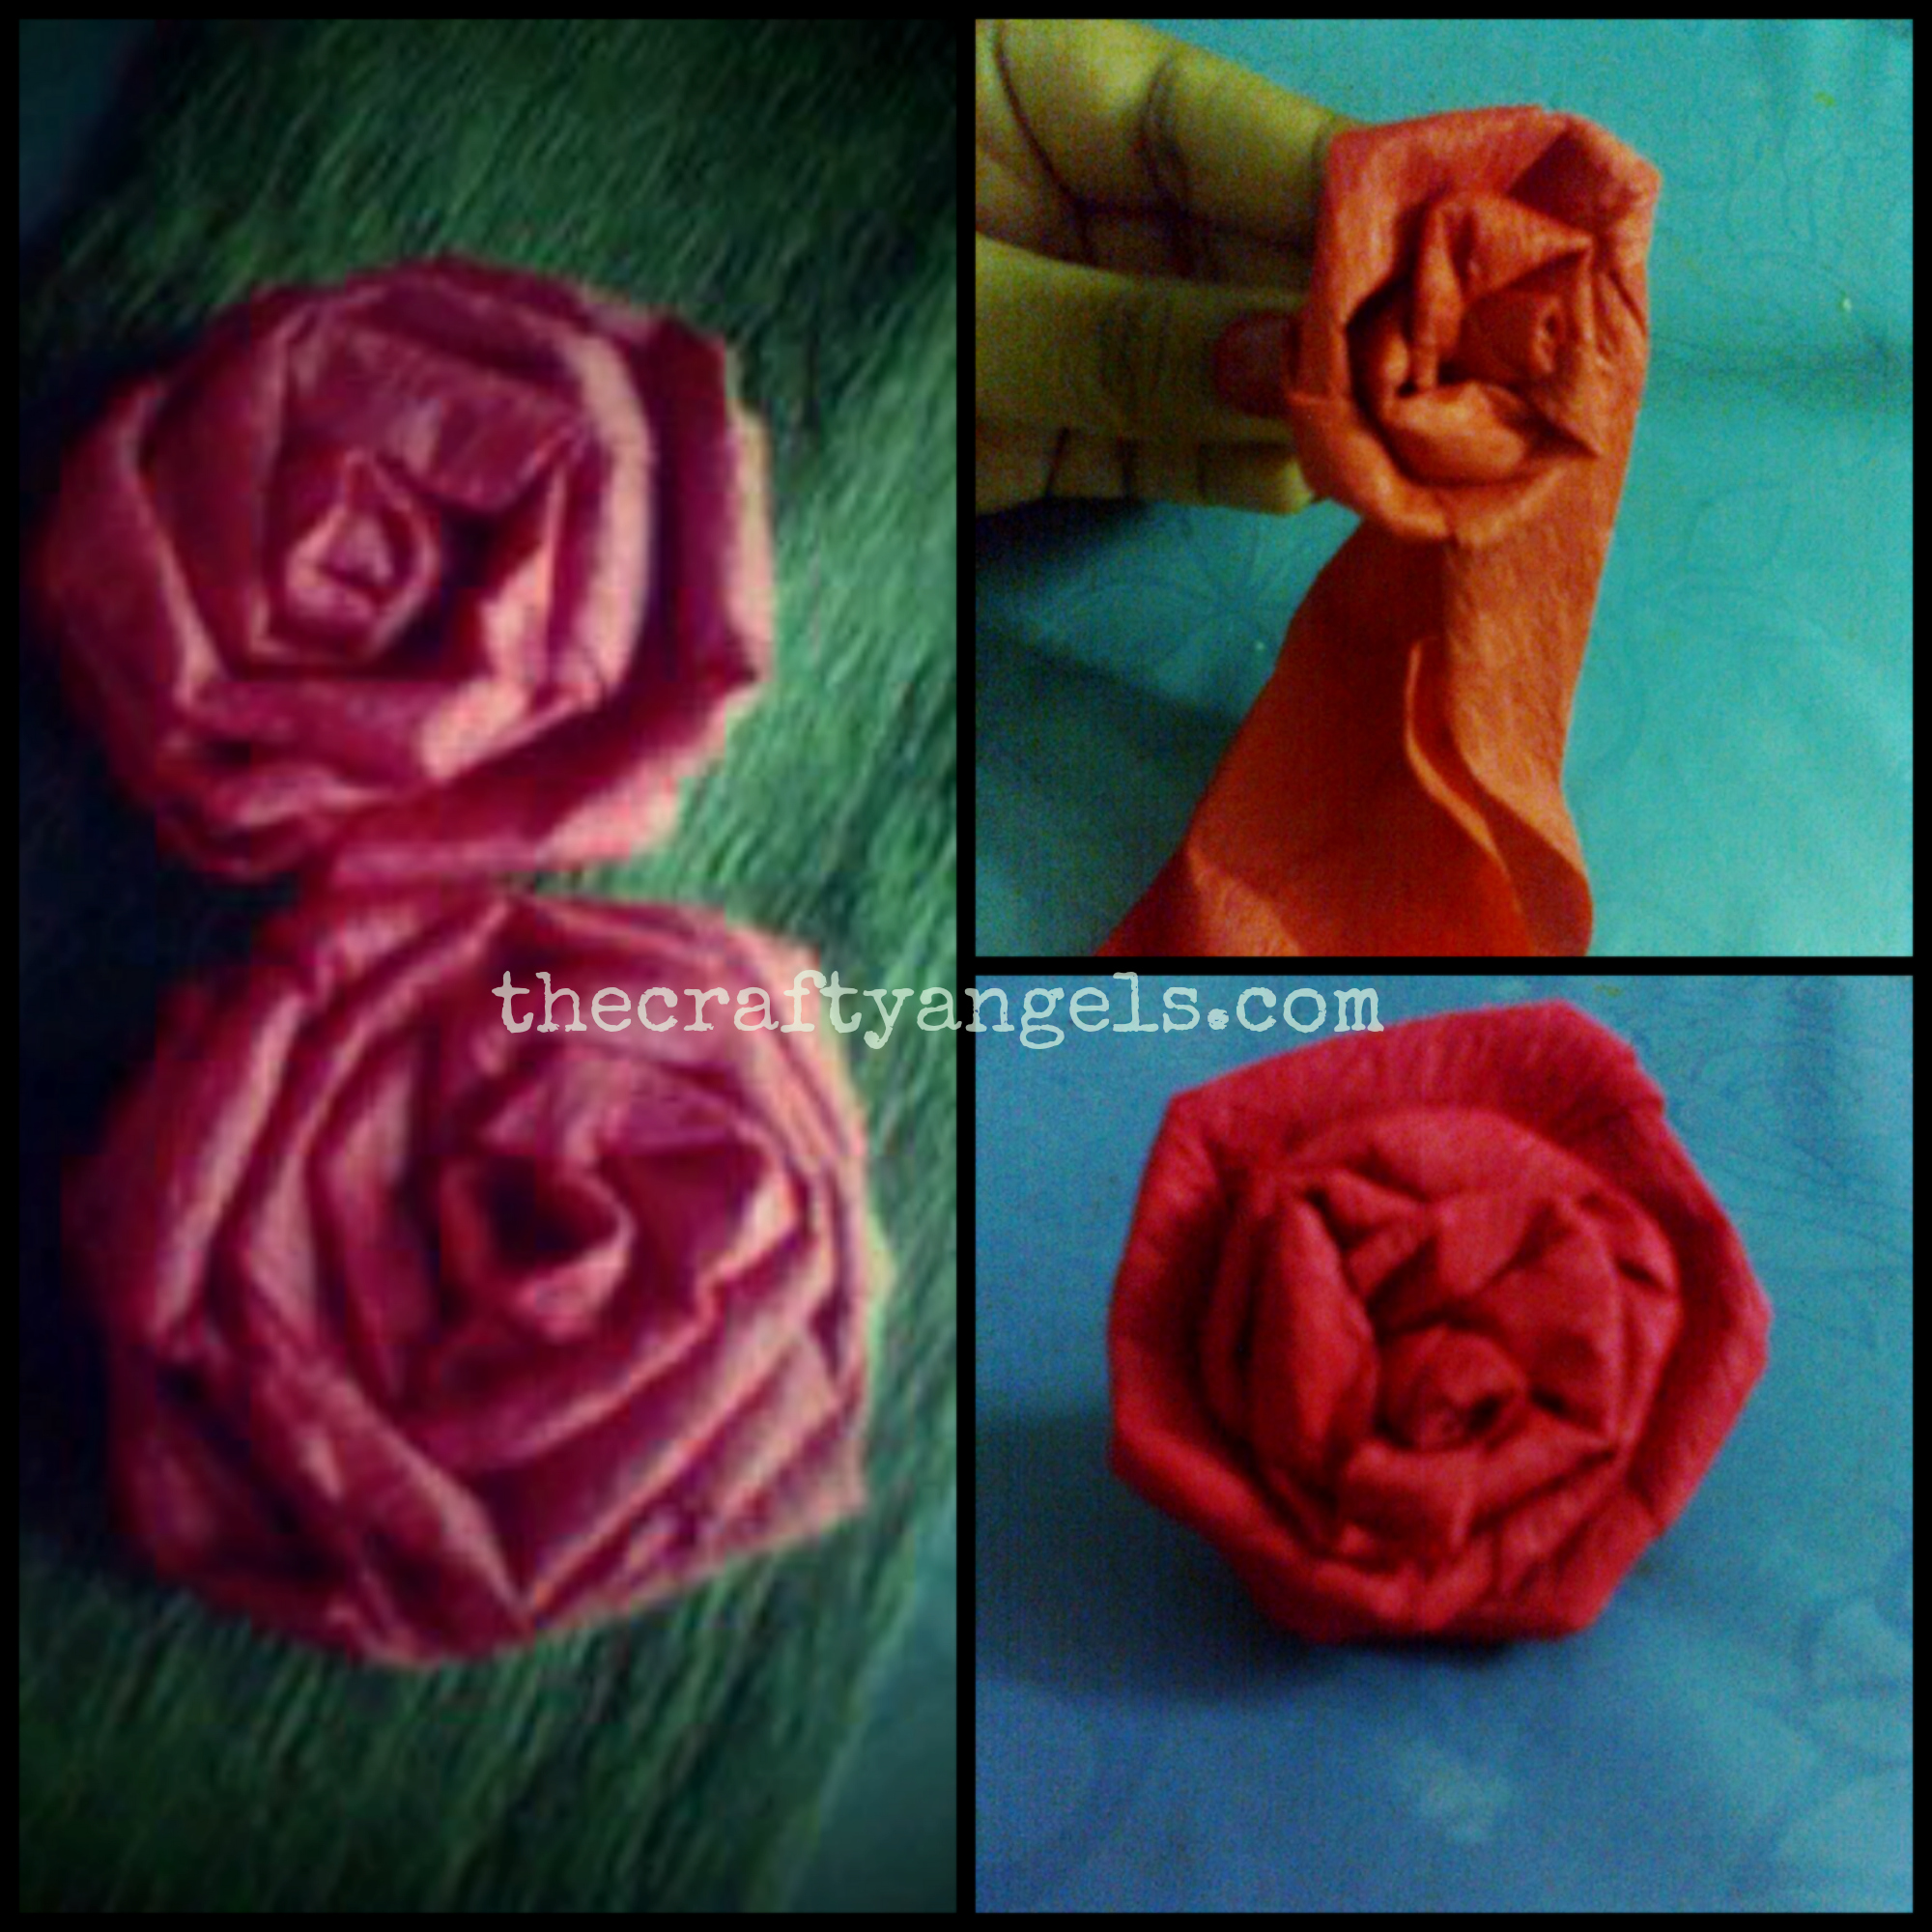 Crepe paper rose flower tutorial 10 step by step tutorial for making crepe paper rose flower dhlflorist Image collections